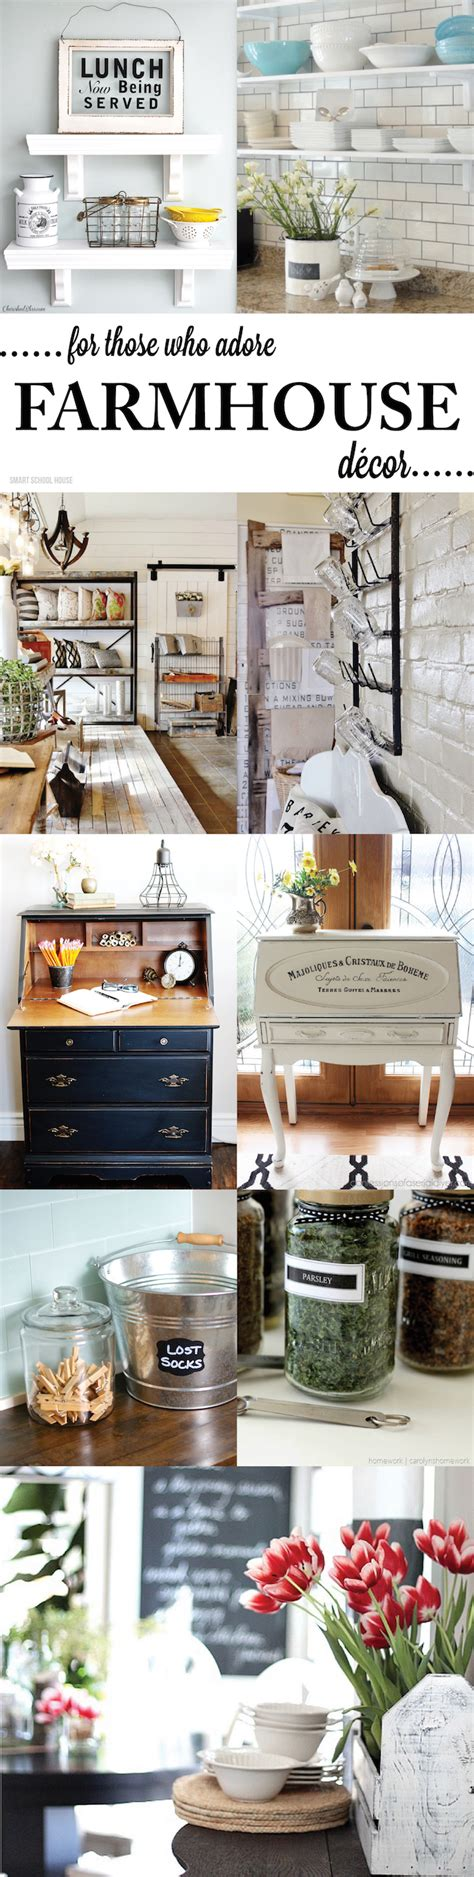 farmhouse decorating ideas farmhouse decor ideas